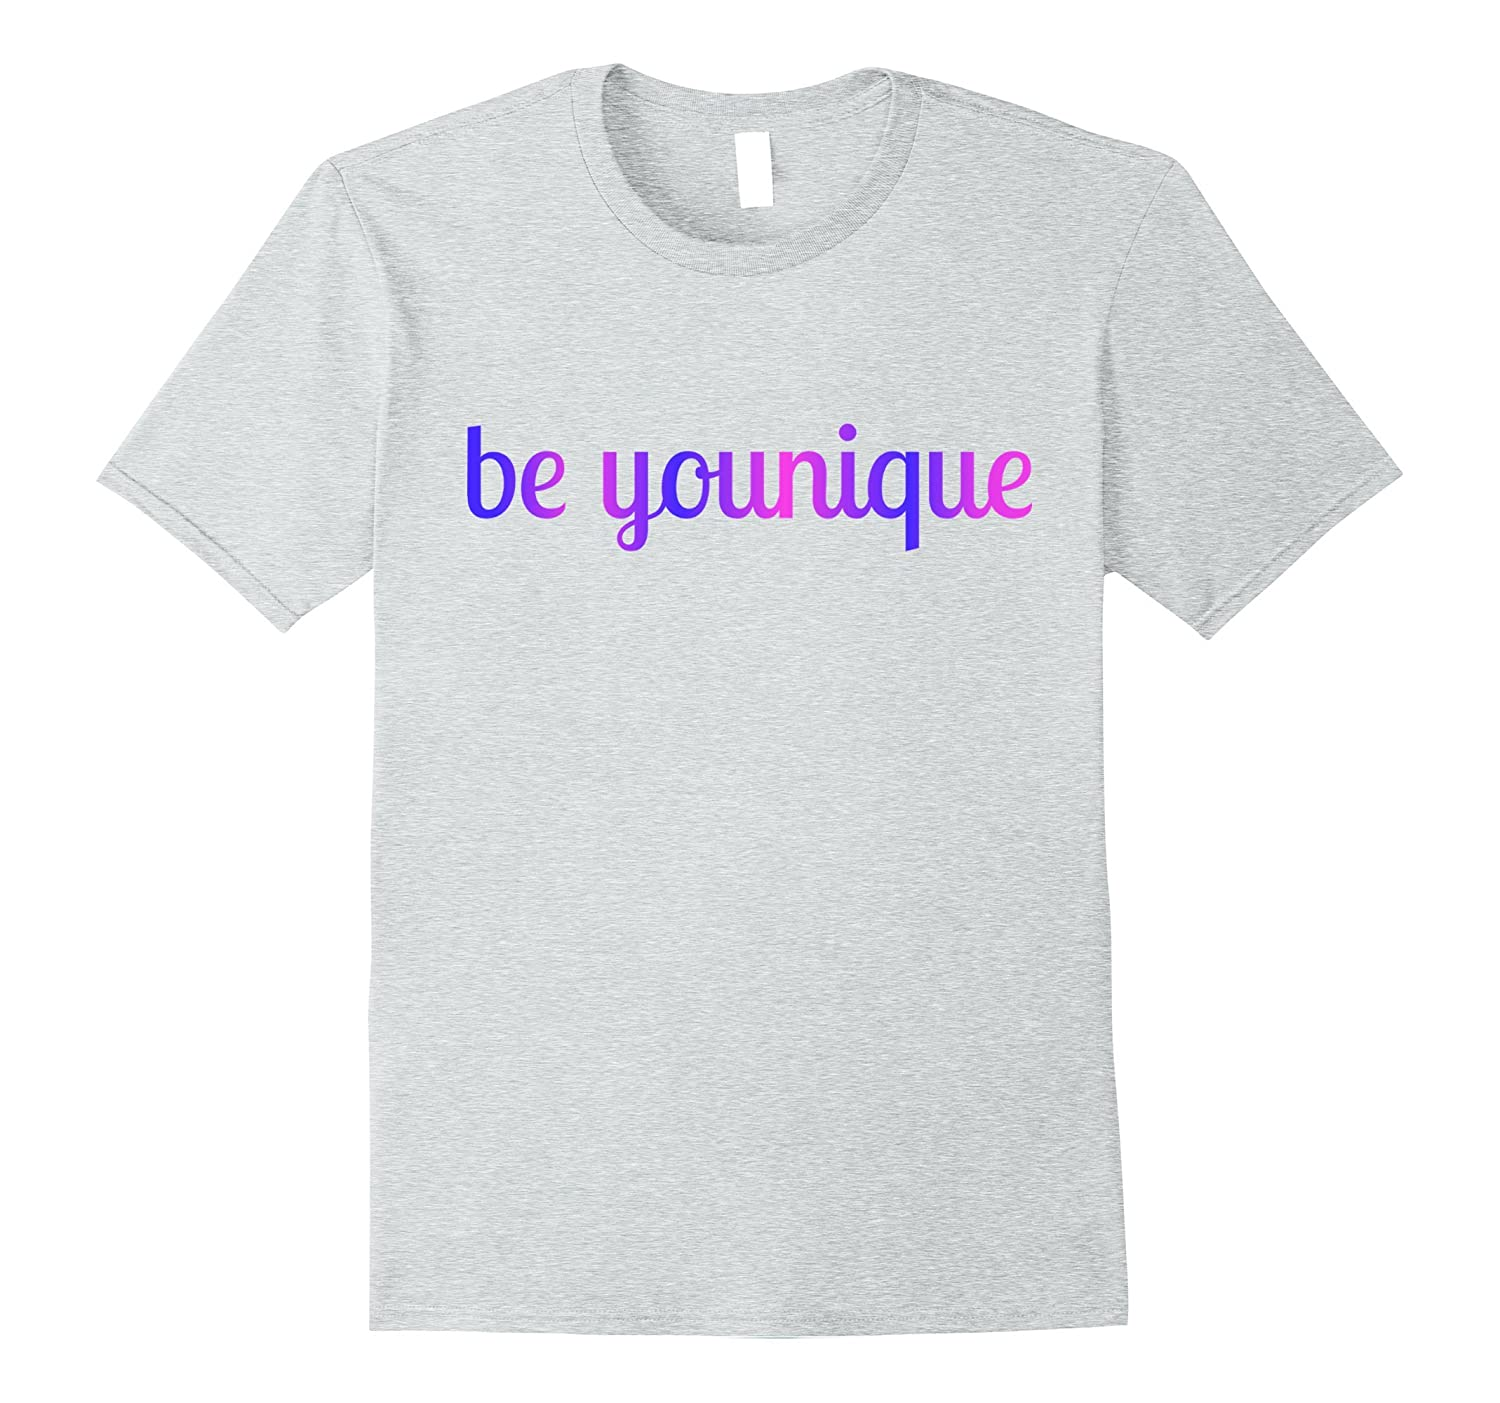 Be Younique Inspirational T-shirt Motivational Tee-FL